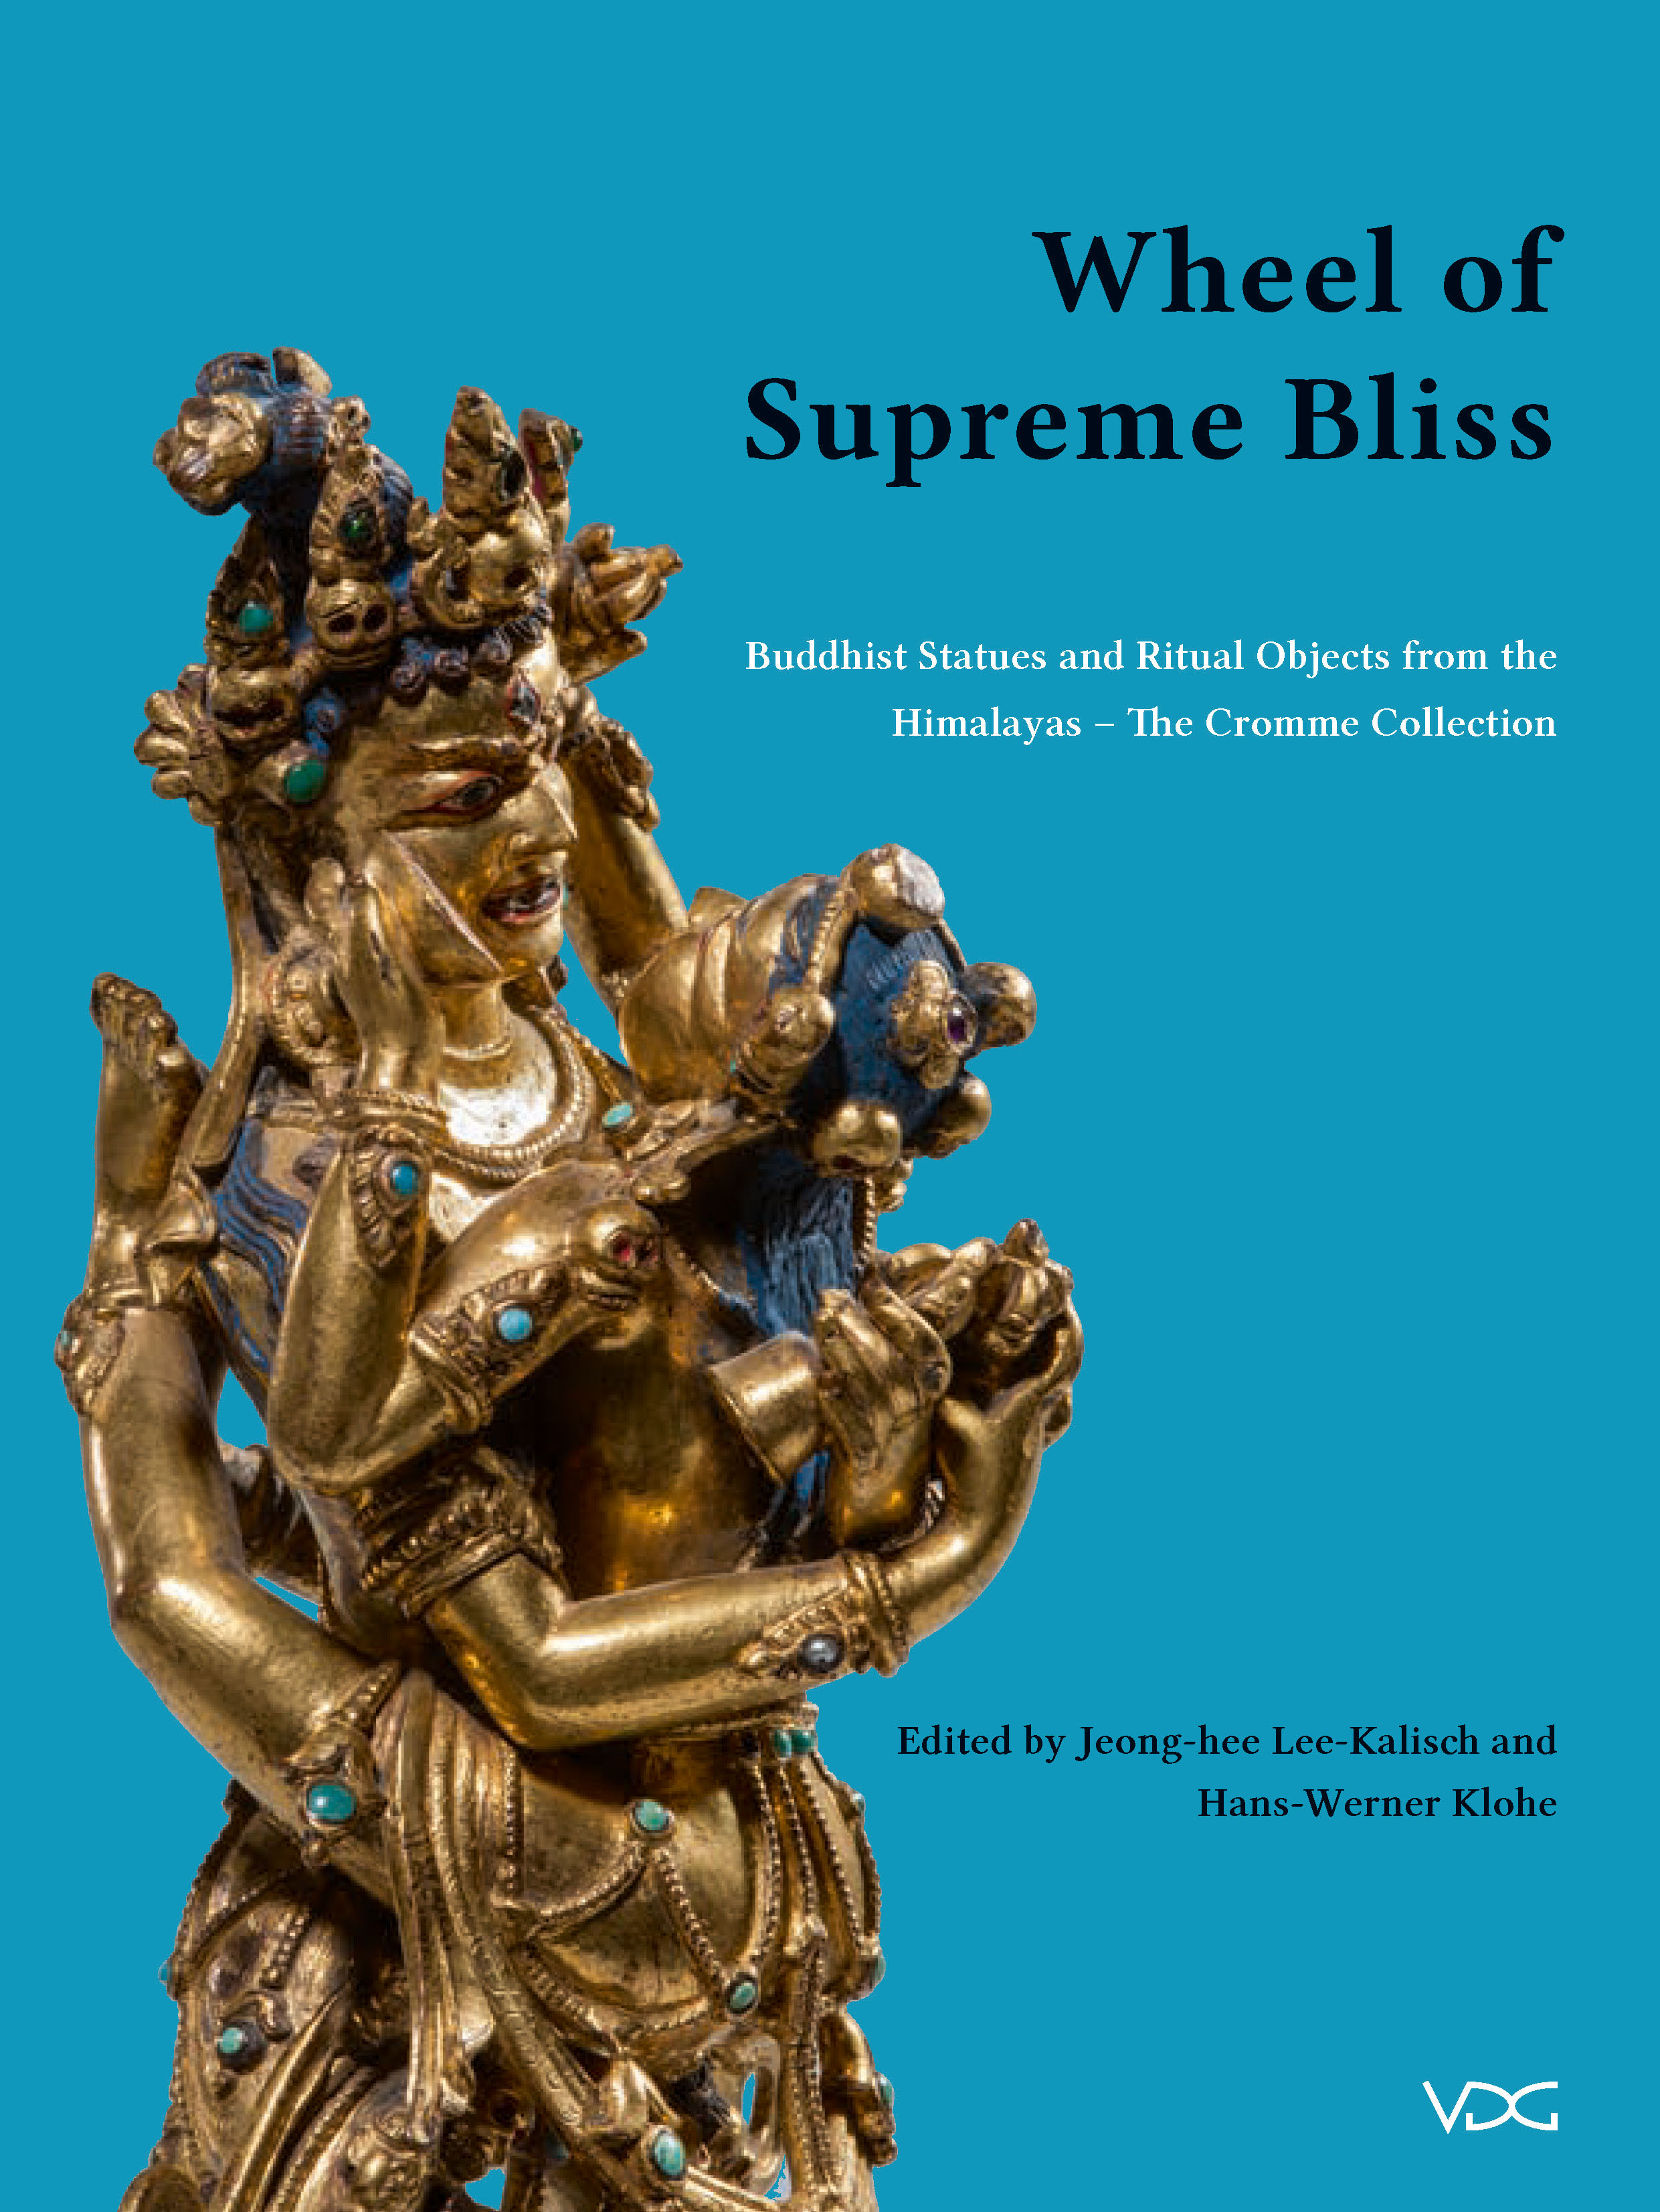 Wheel of Supreme Bliss © Cover VDG